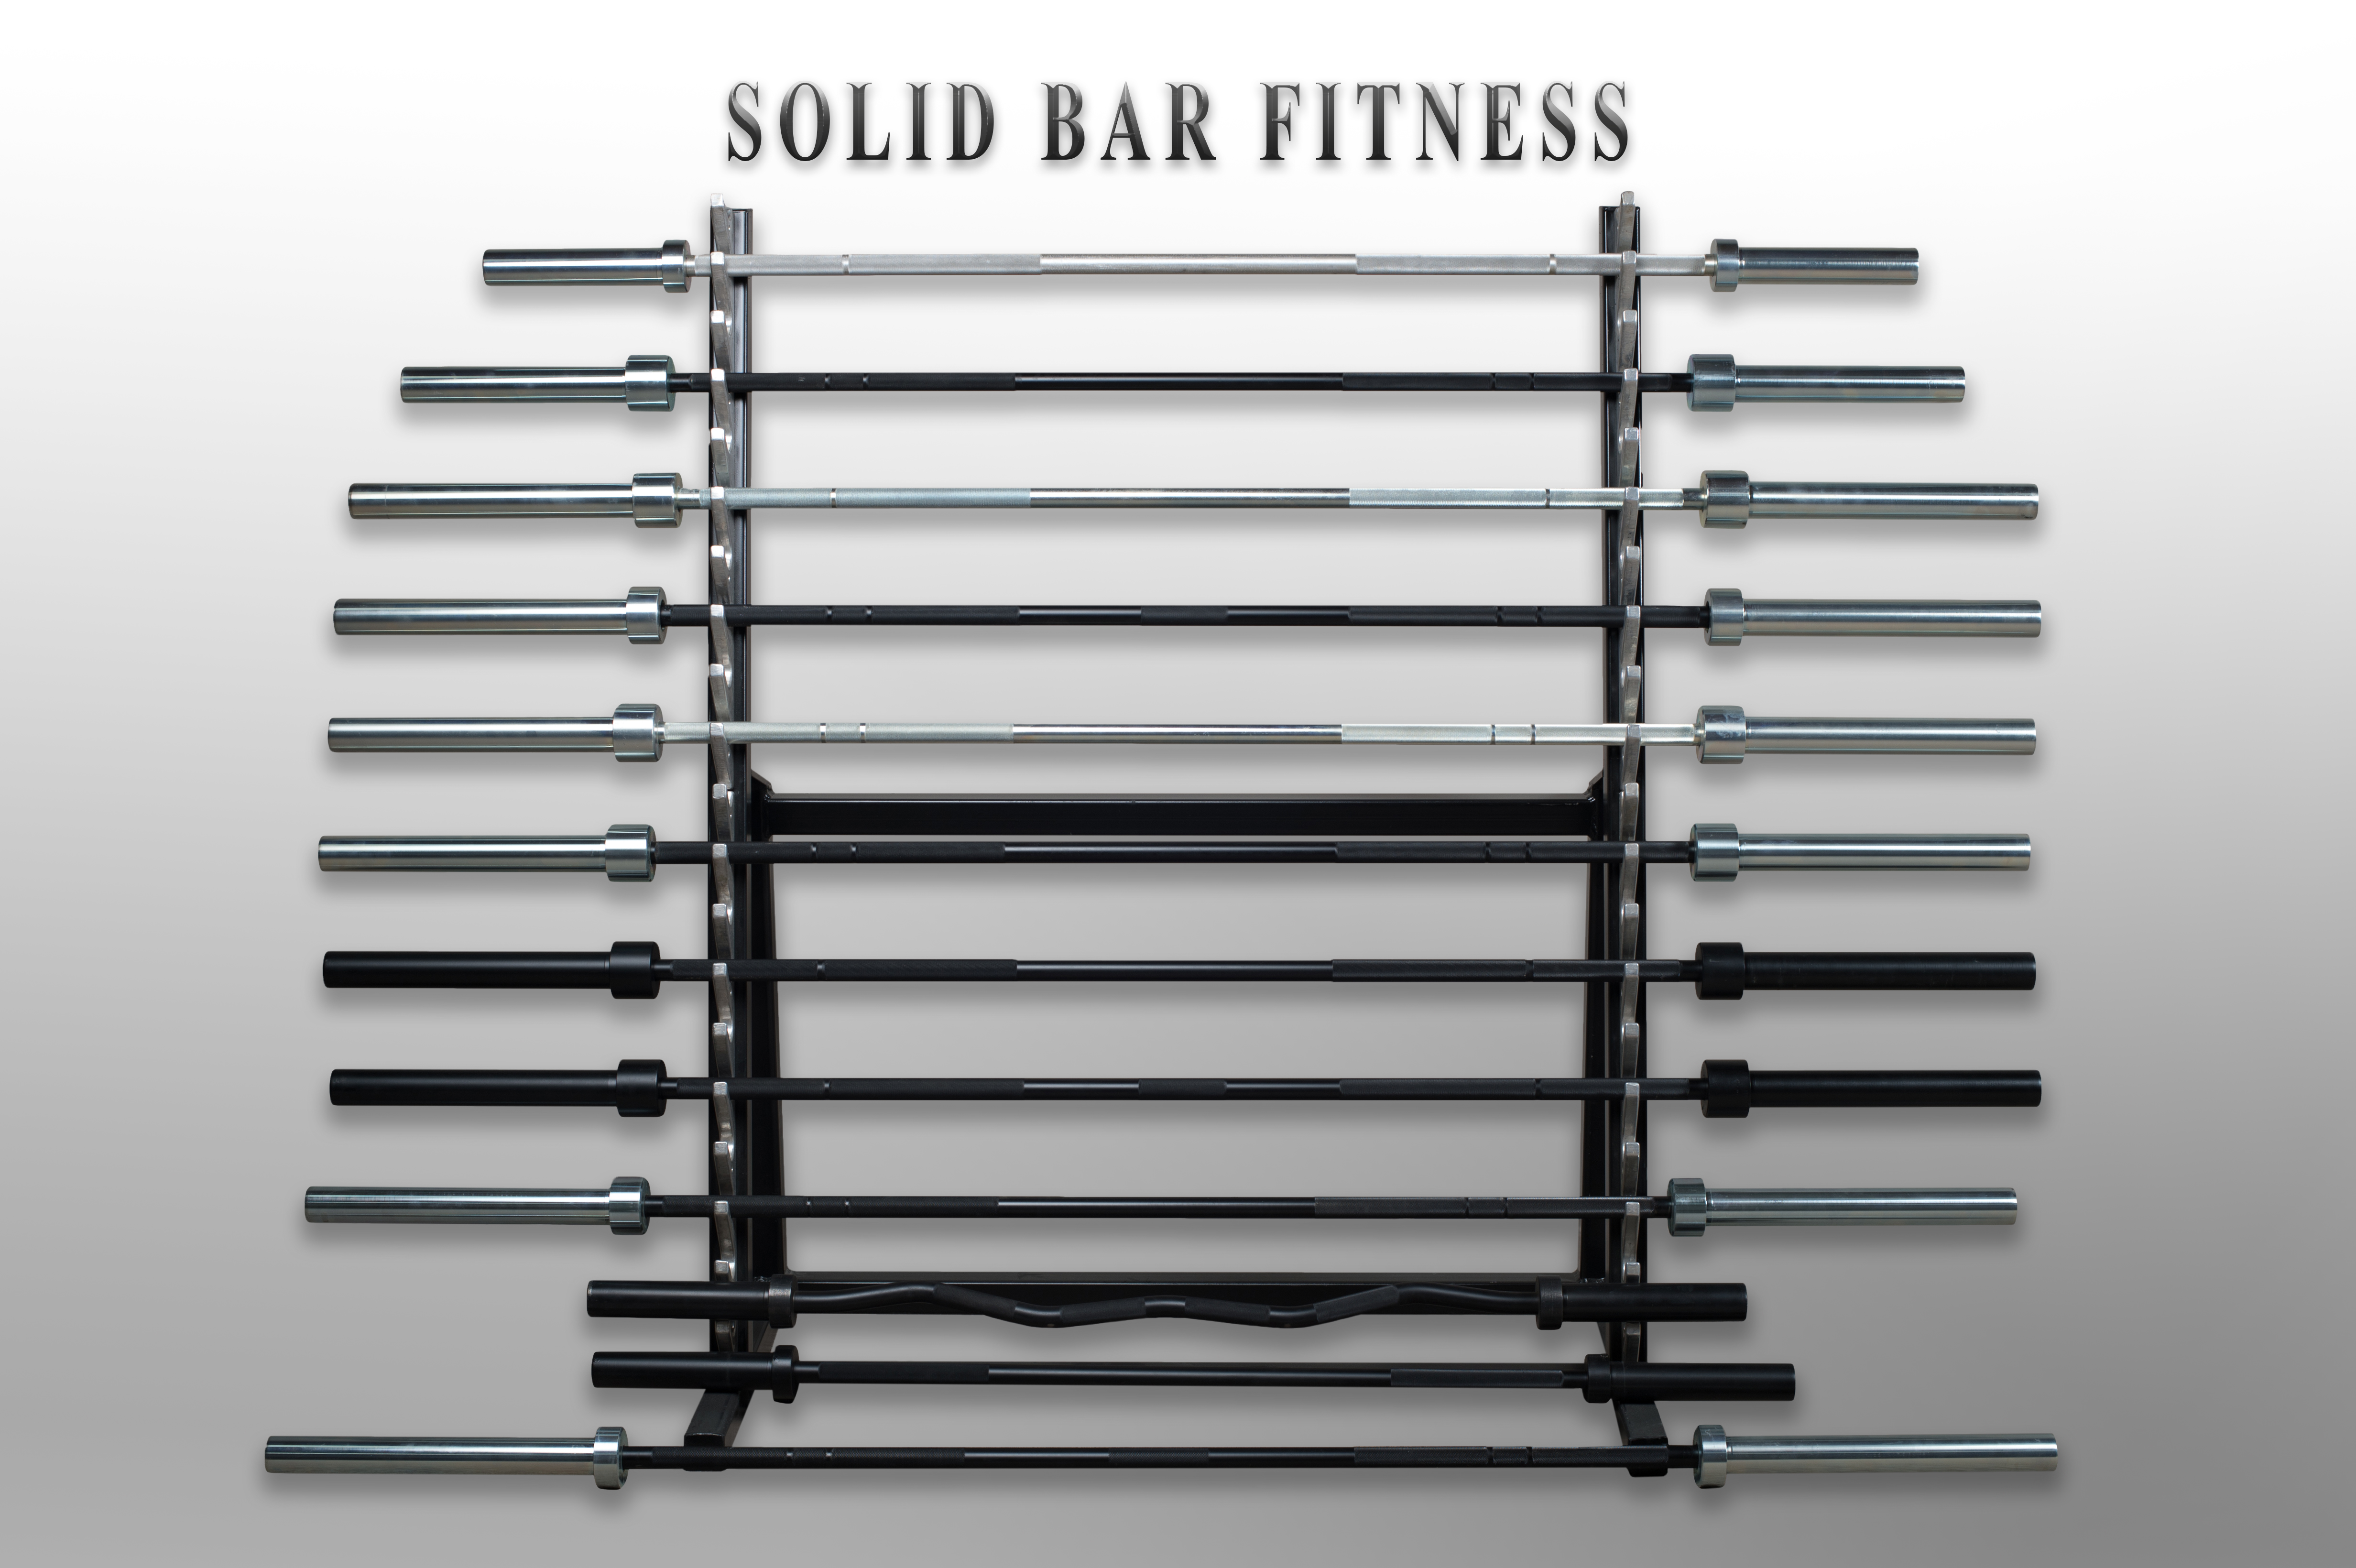 Solid Bar Fitness